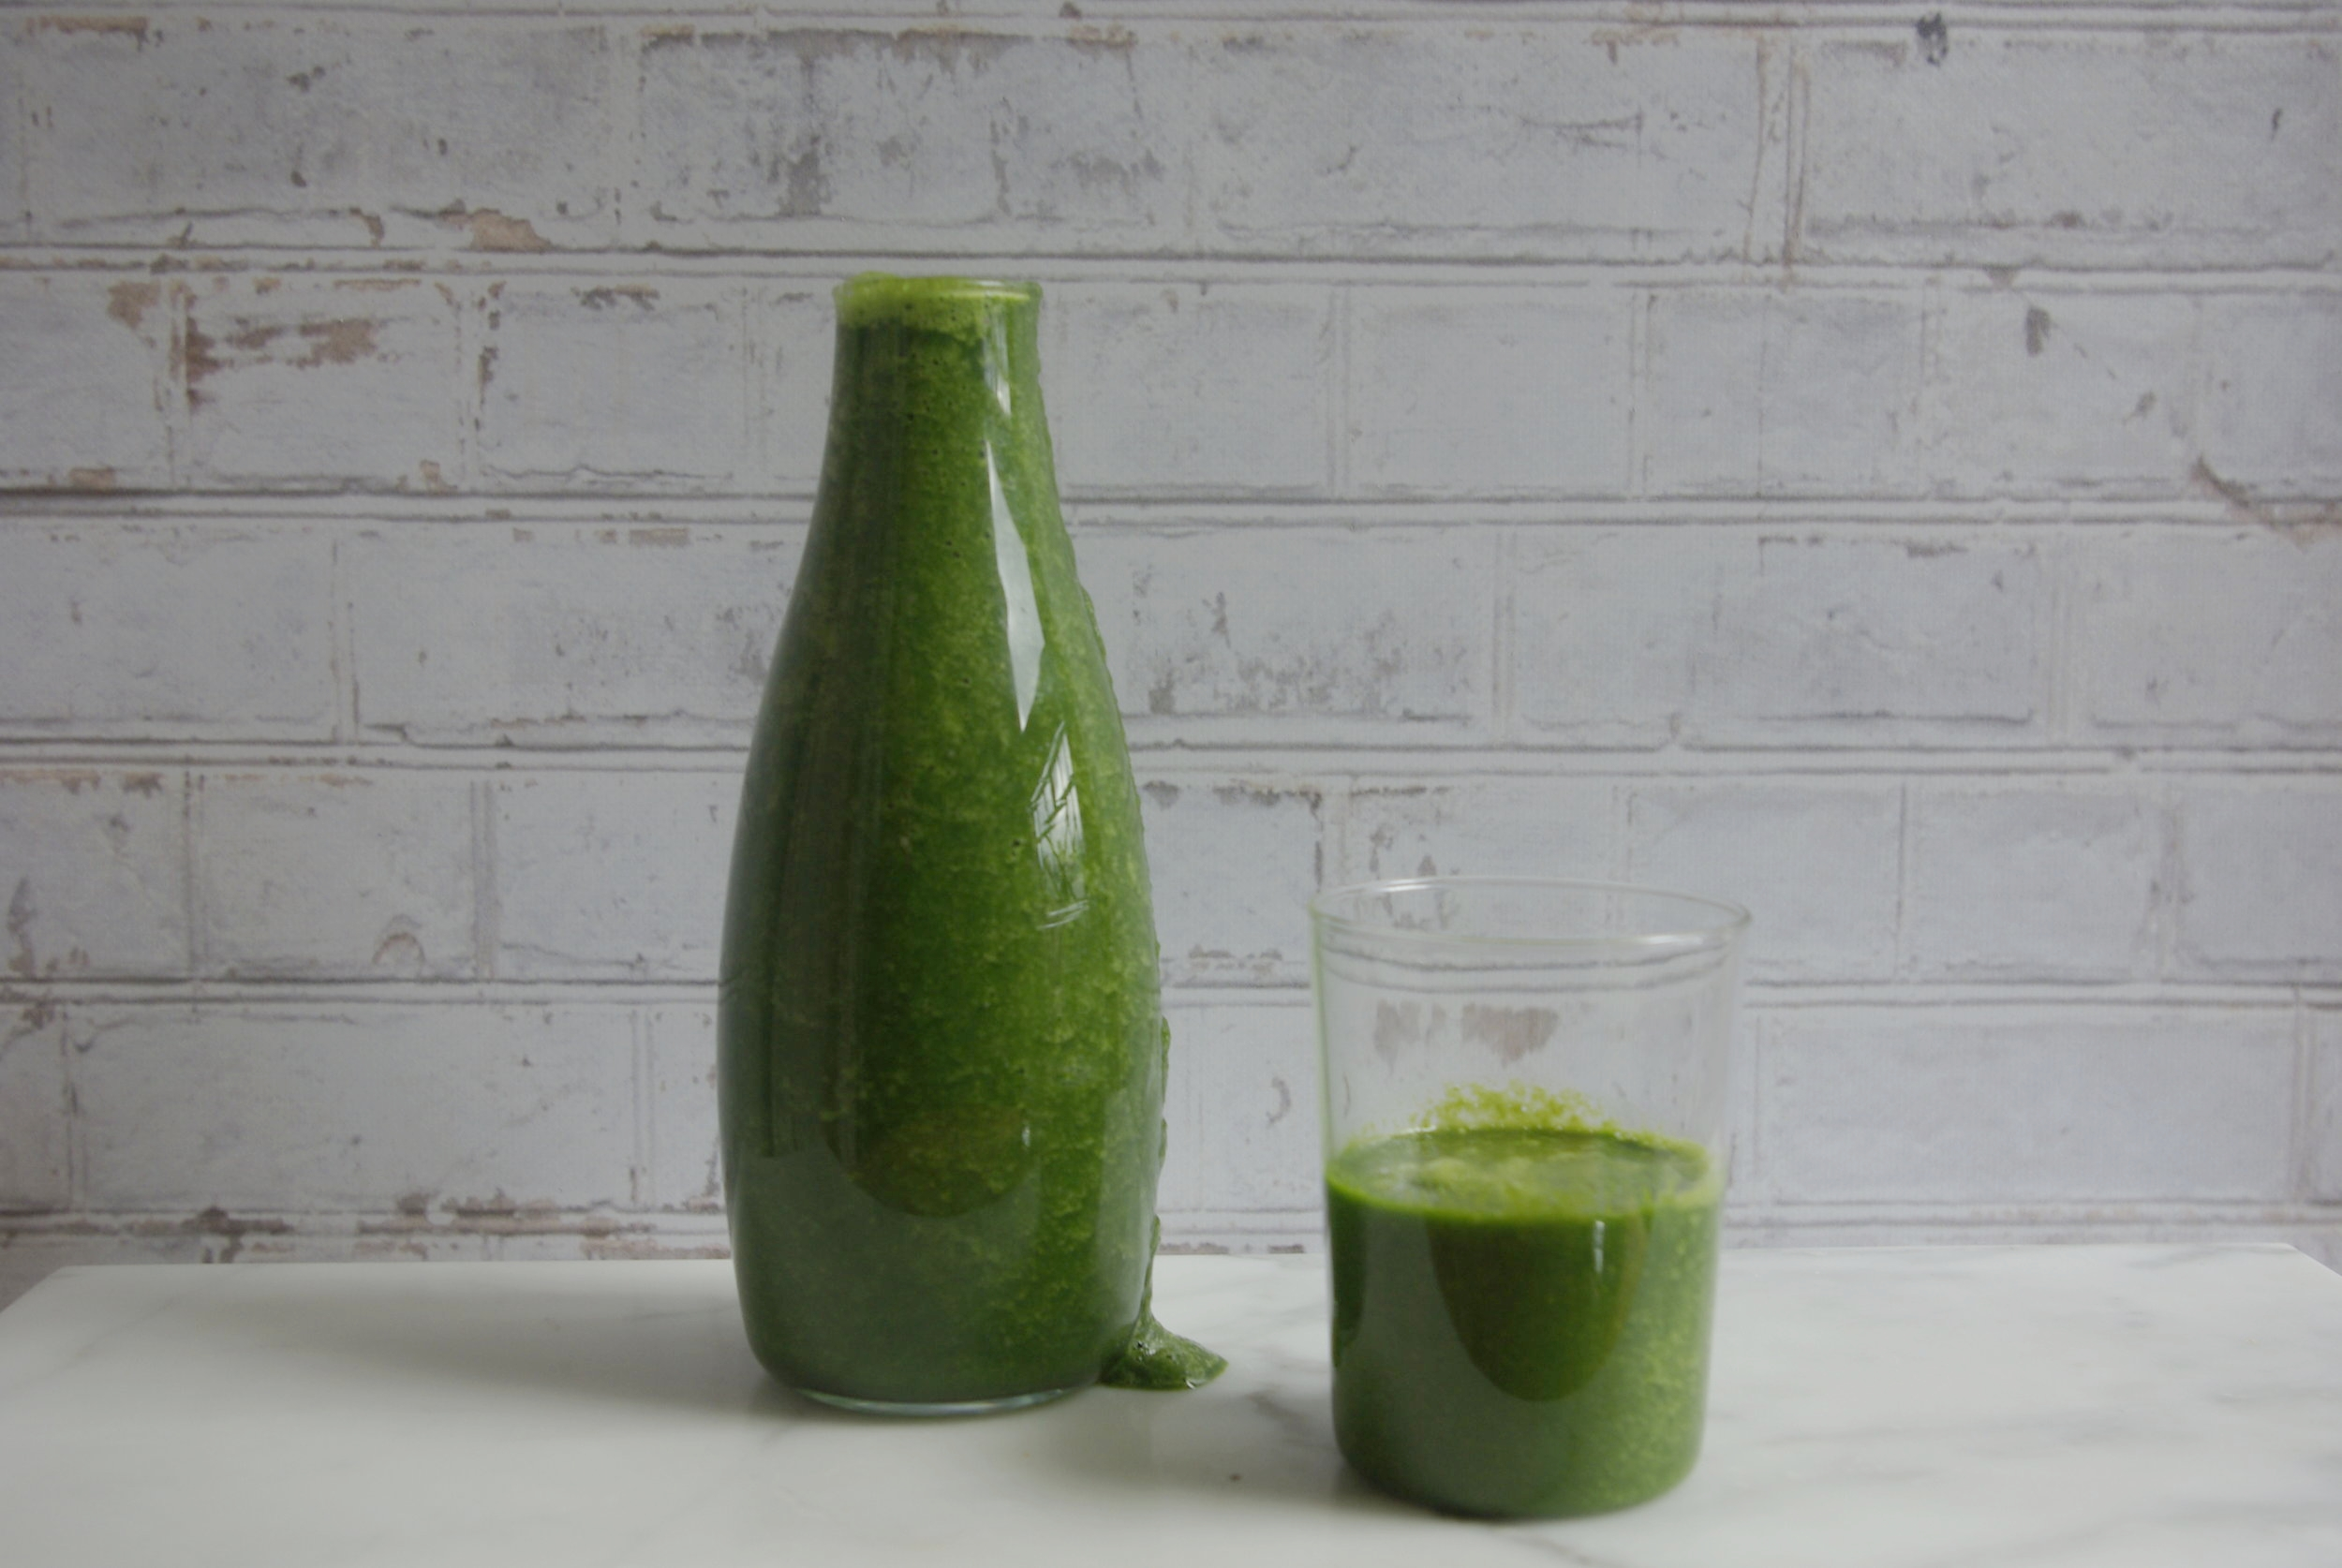 Bottle and Glass Green Gingery Smoothie The Beauty of Simplicity by Salwa Petersen.jpg